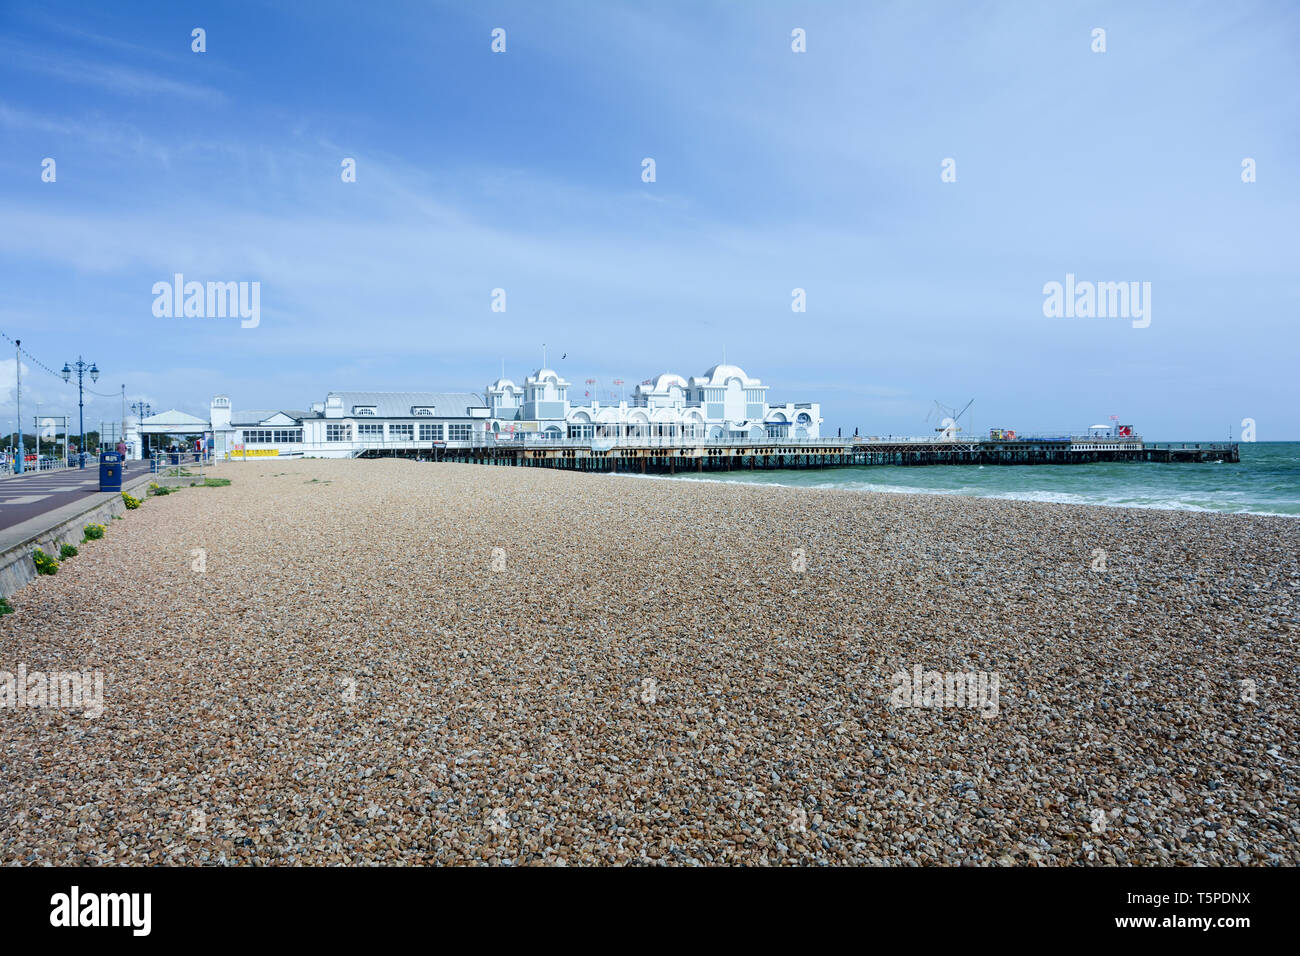 South Parade Pier, Southsea, Hampshire, England, UK Stock Photo